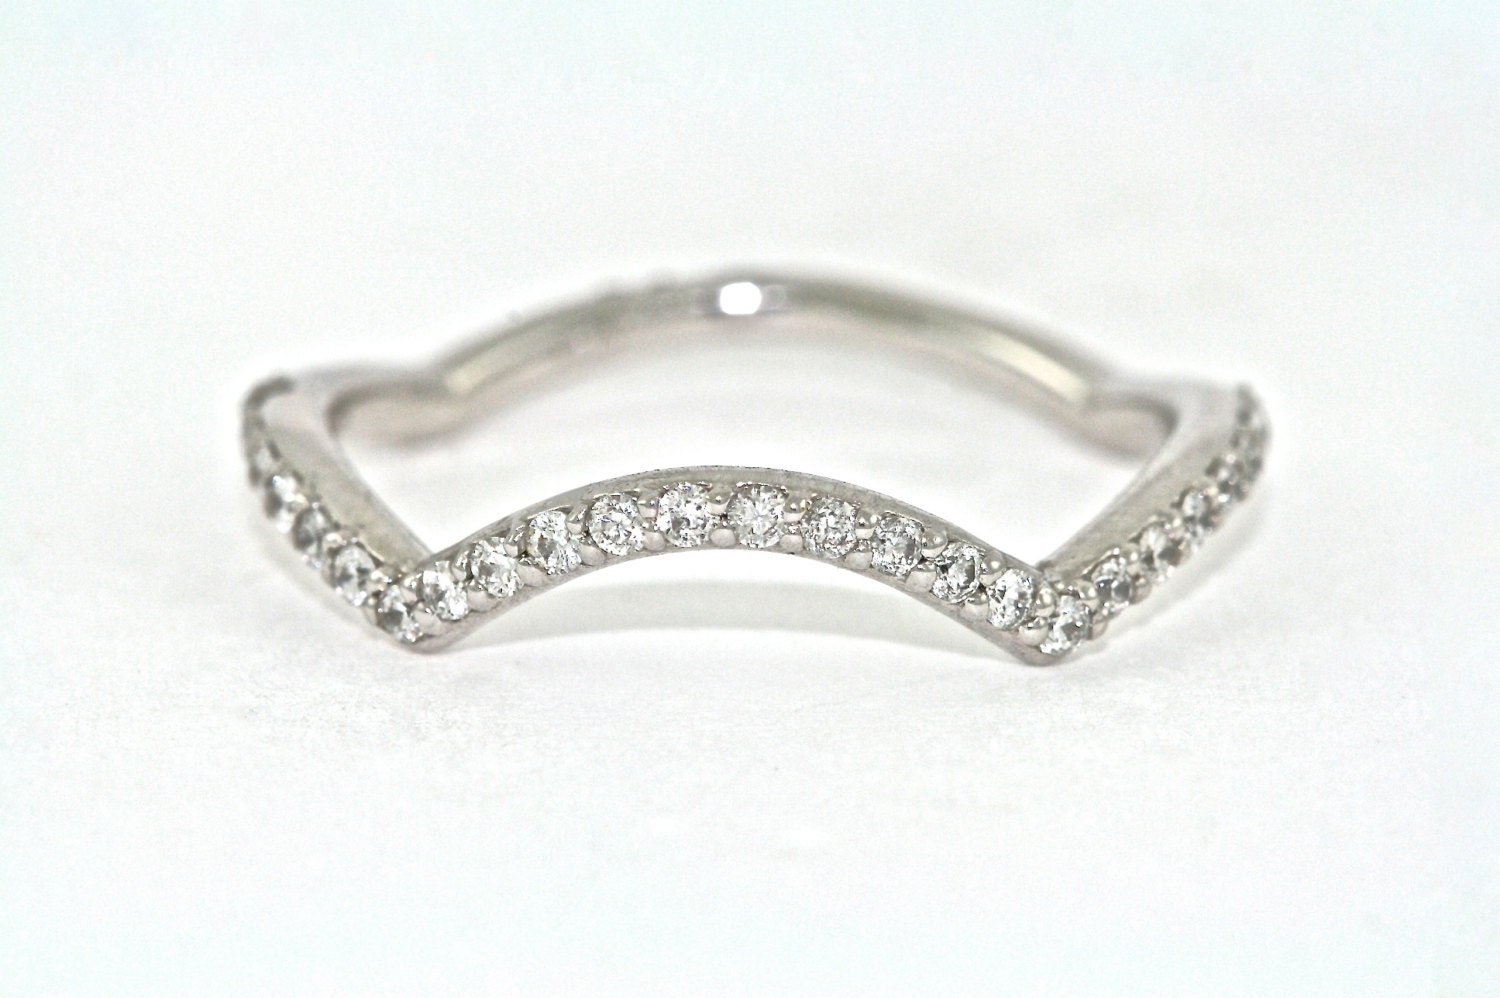 14kt white gold and diamond curved wedding band